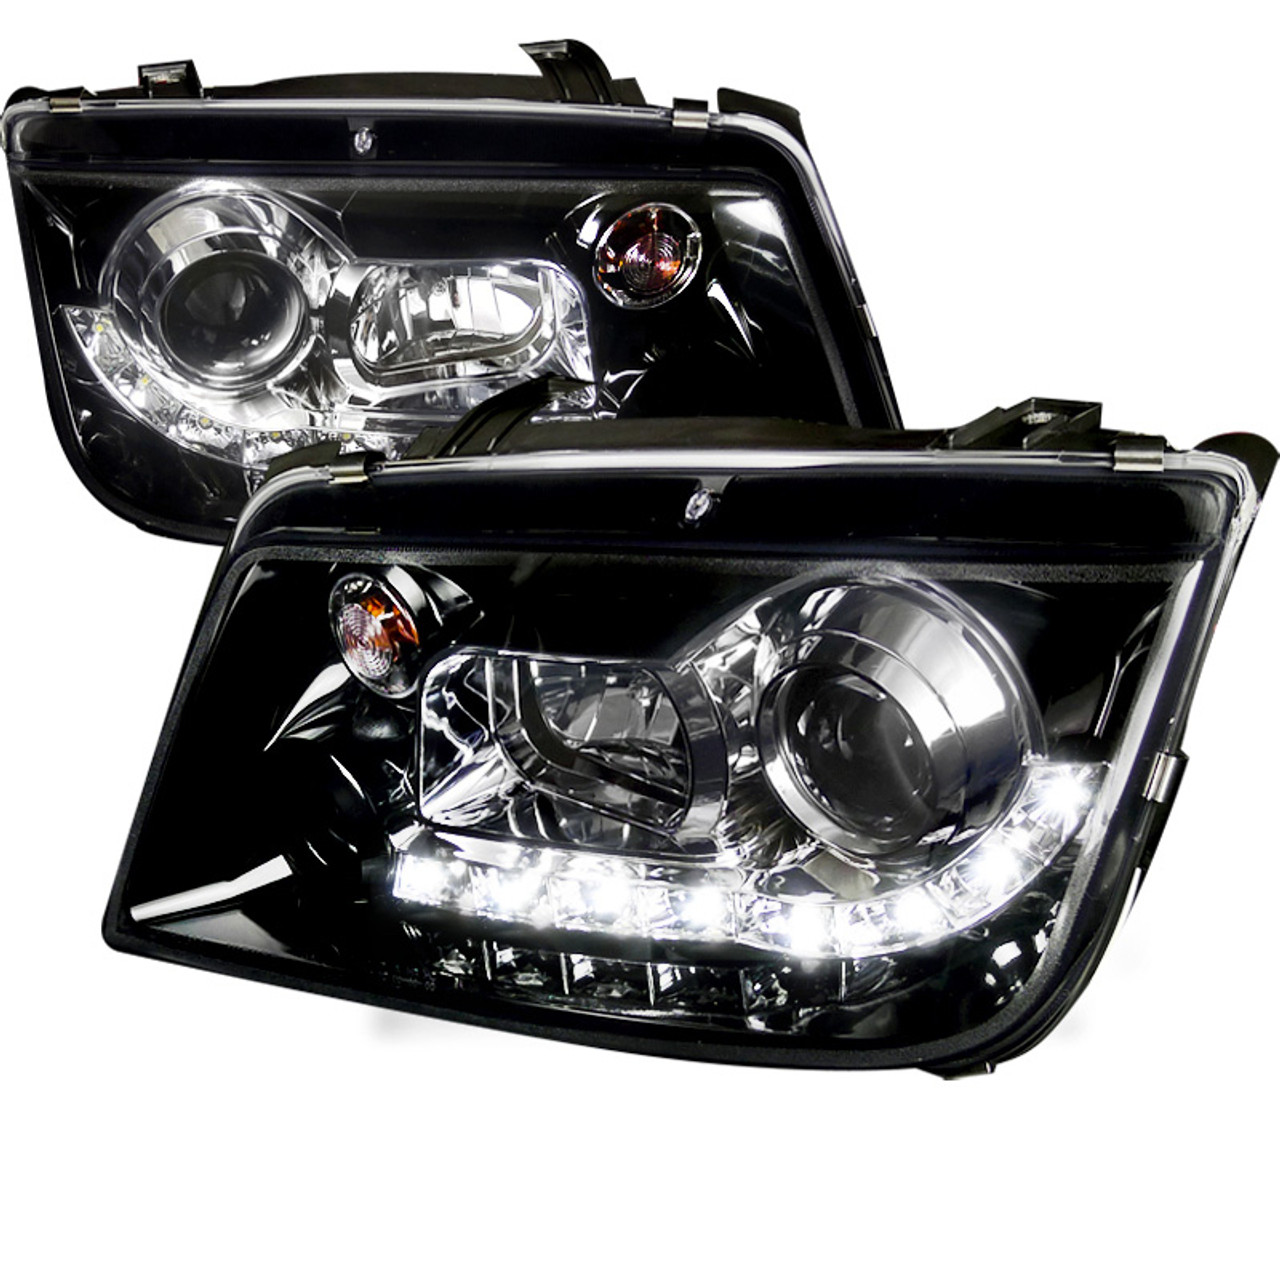 1999 2004 Volkswagen Jetta Bora Projector Headlights W R8 Style Led Light Strip Glossy Black Housing Smoke Lens Spec D Tuning